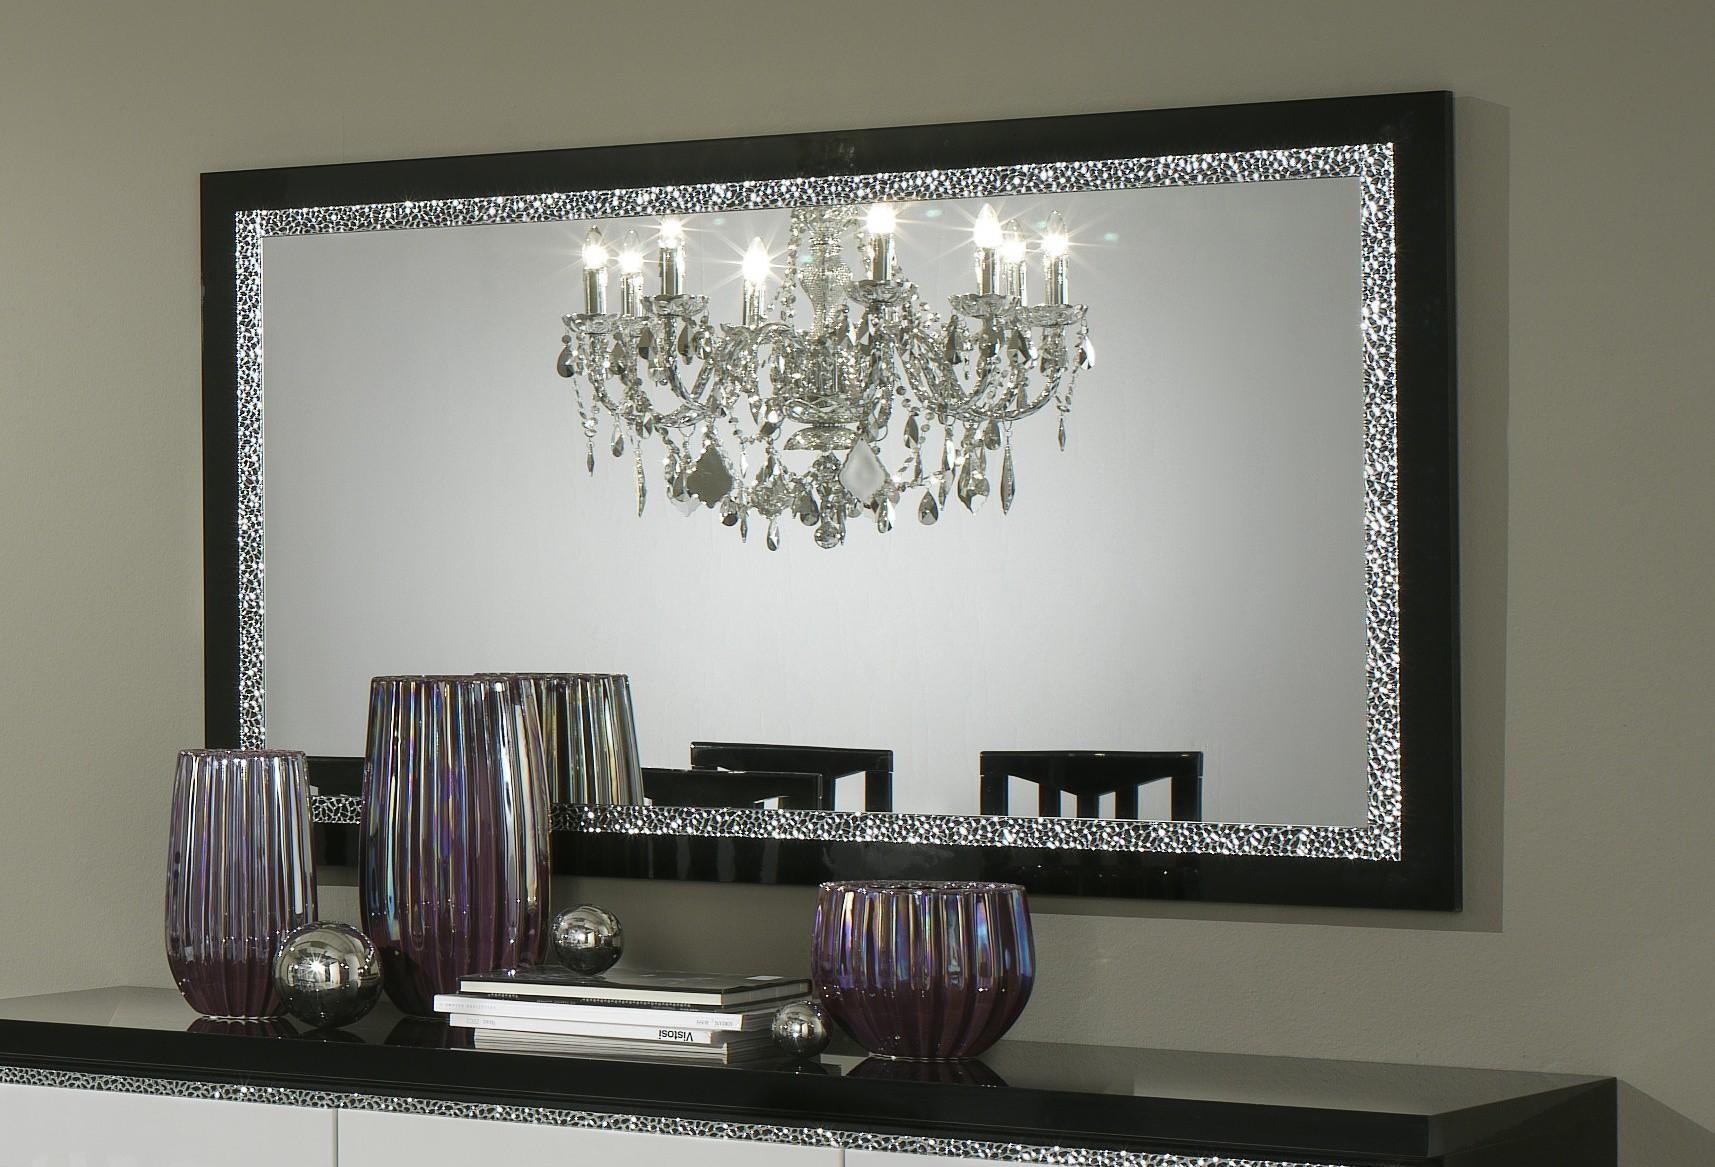 miroir pour salle a manger id es de d coration int rieure french decor. Black Bedroom Furniture Sets. Home Design Ideas